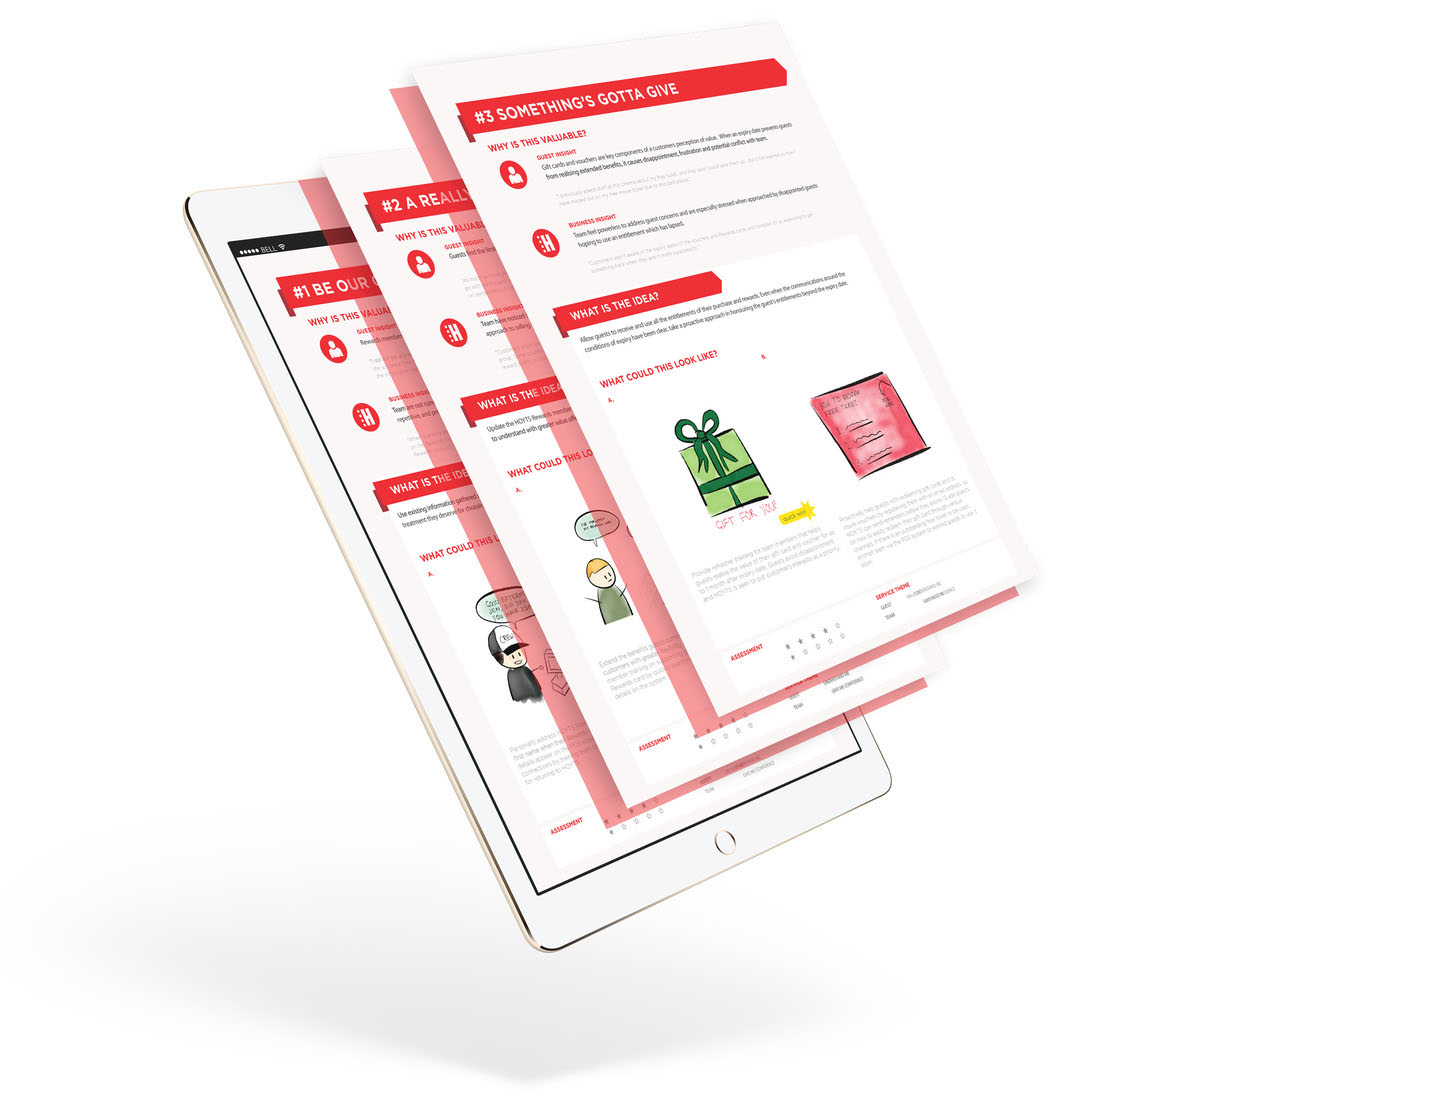 Hoyts insights and initiative cards displayed on an ipad through graphic illustration